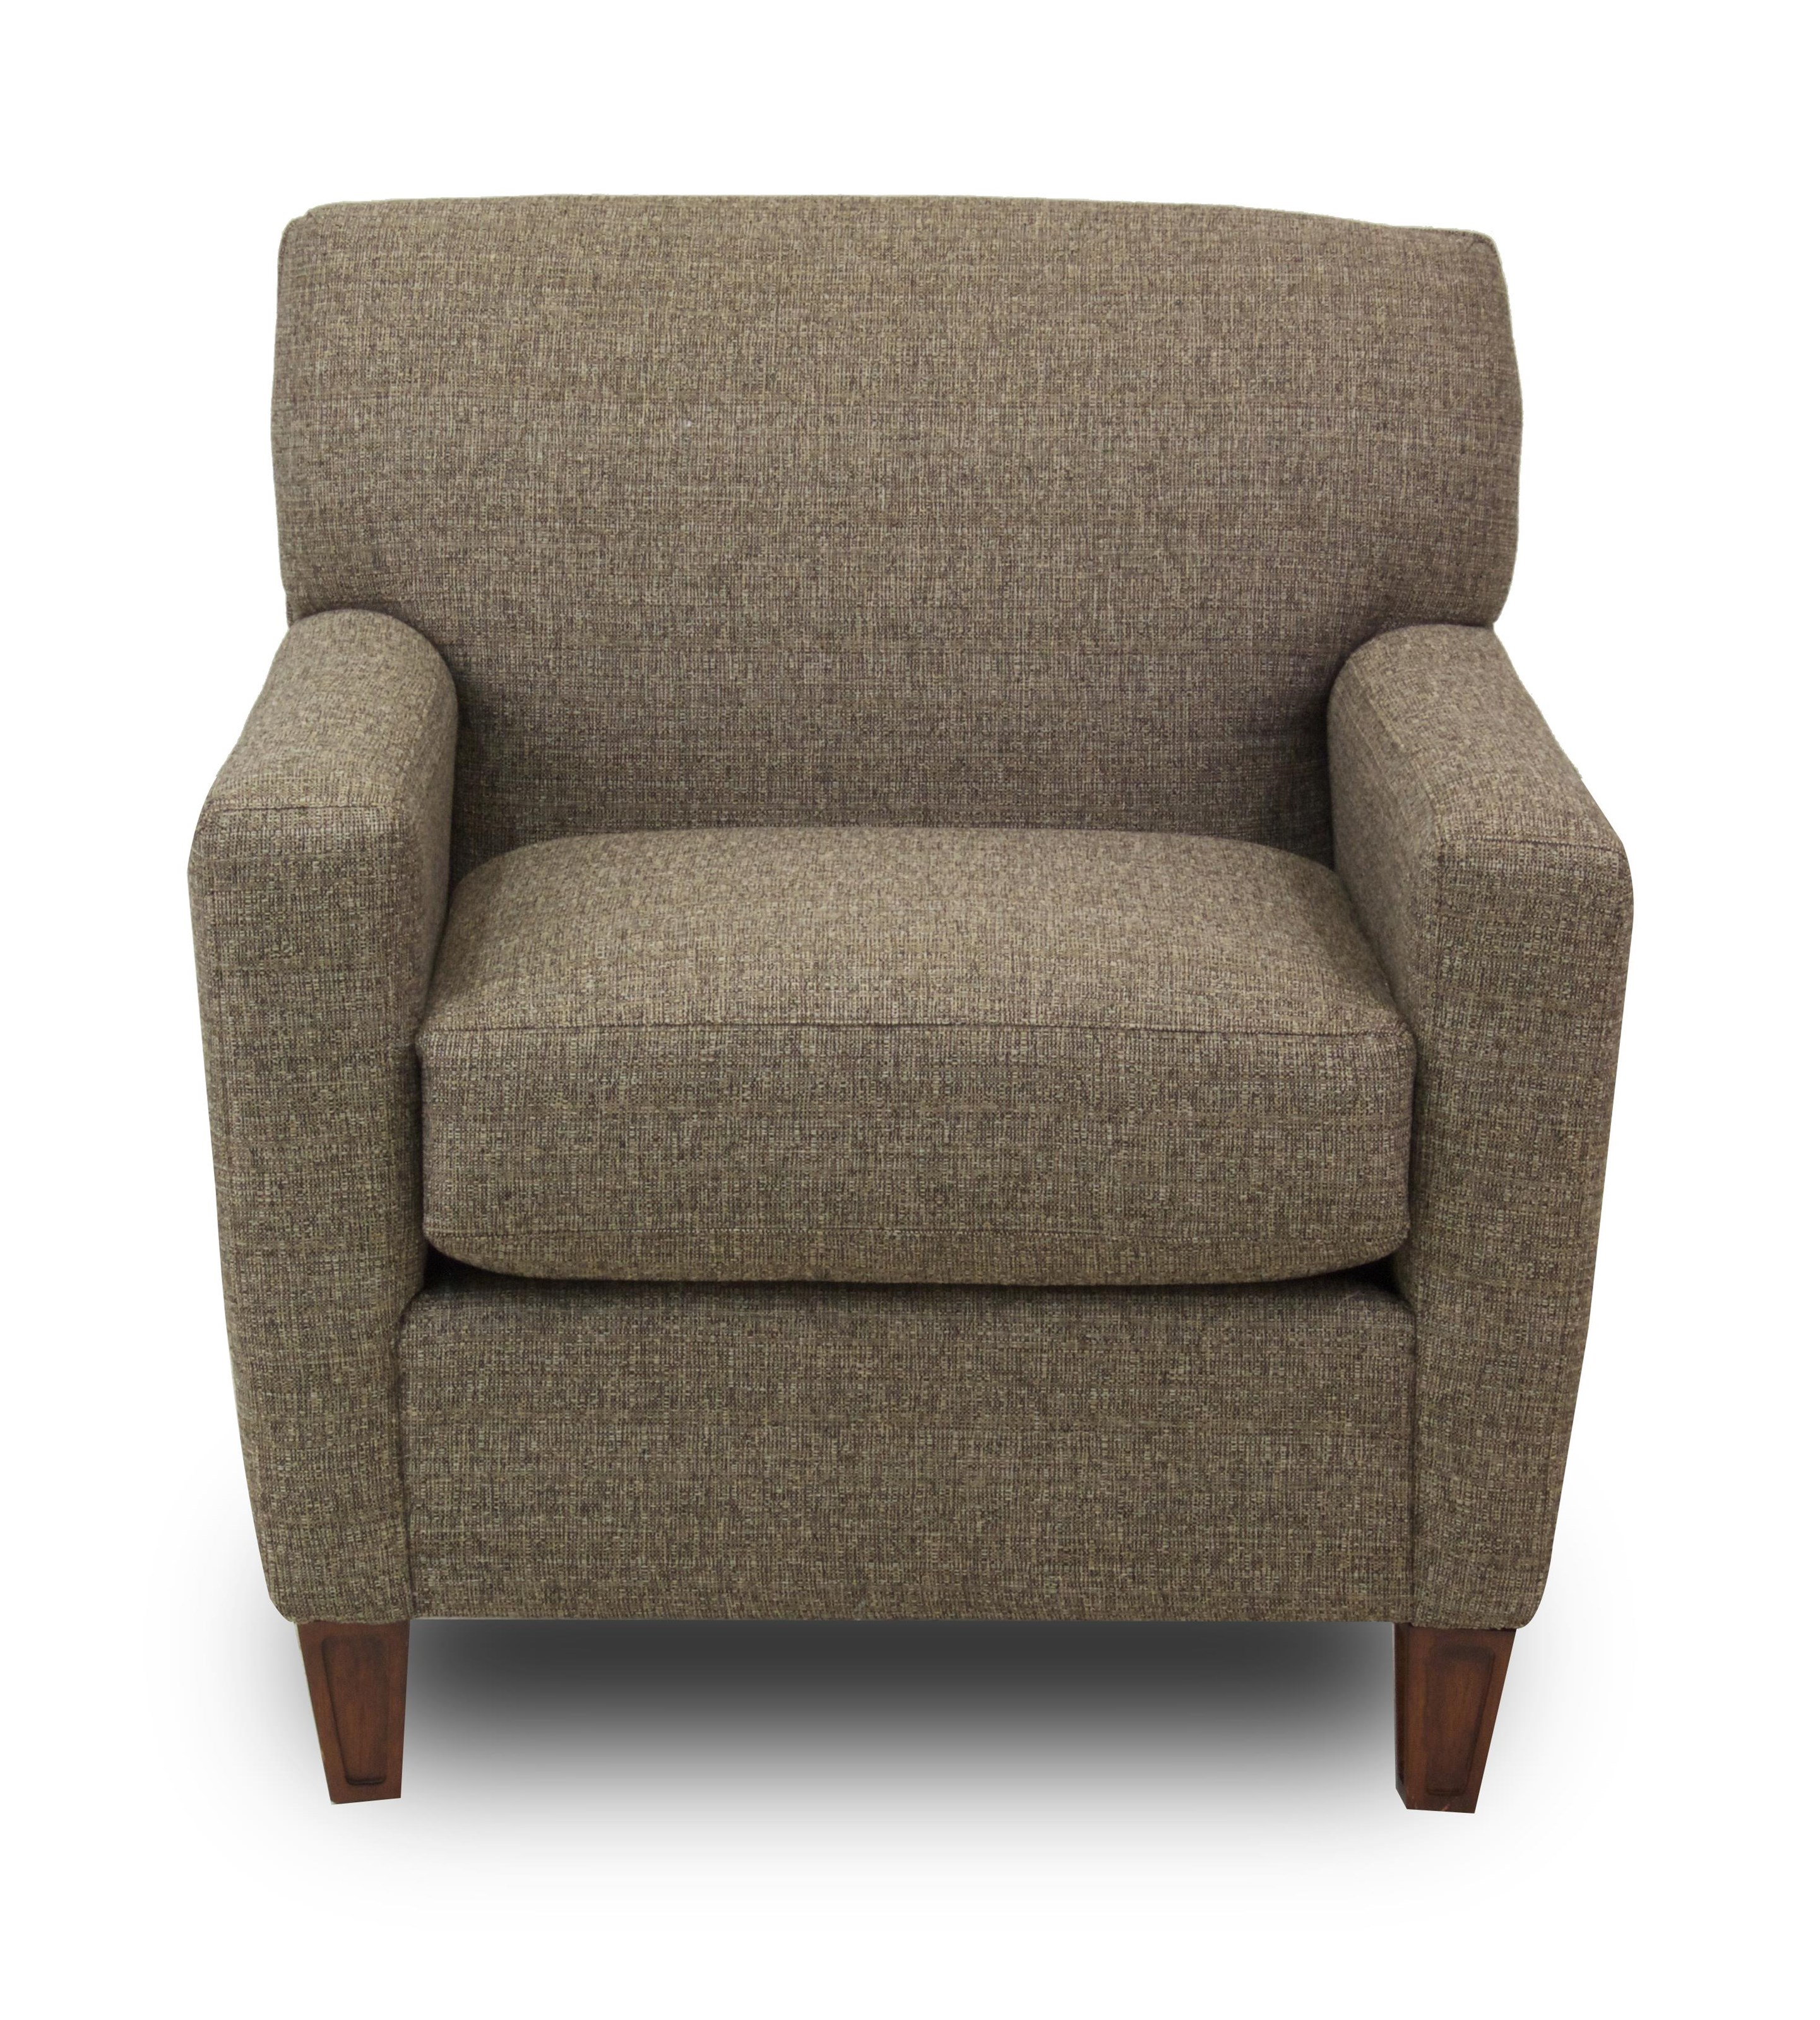 Hickory Craft Lana Contemporary Chair - Item Number: 17786-C